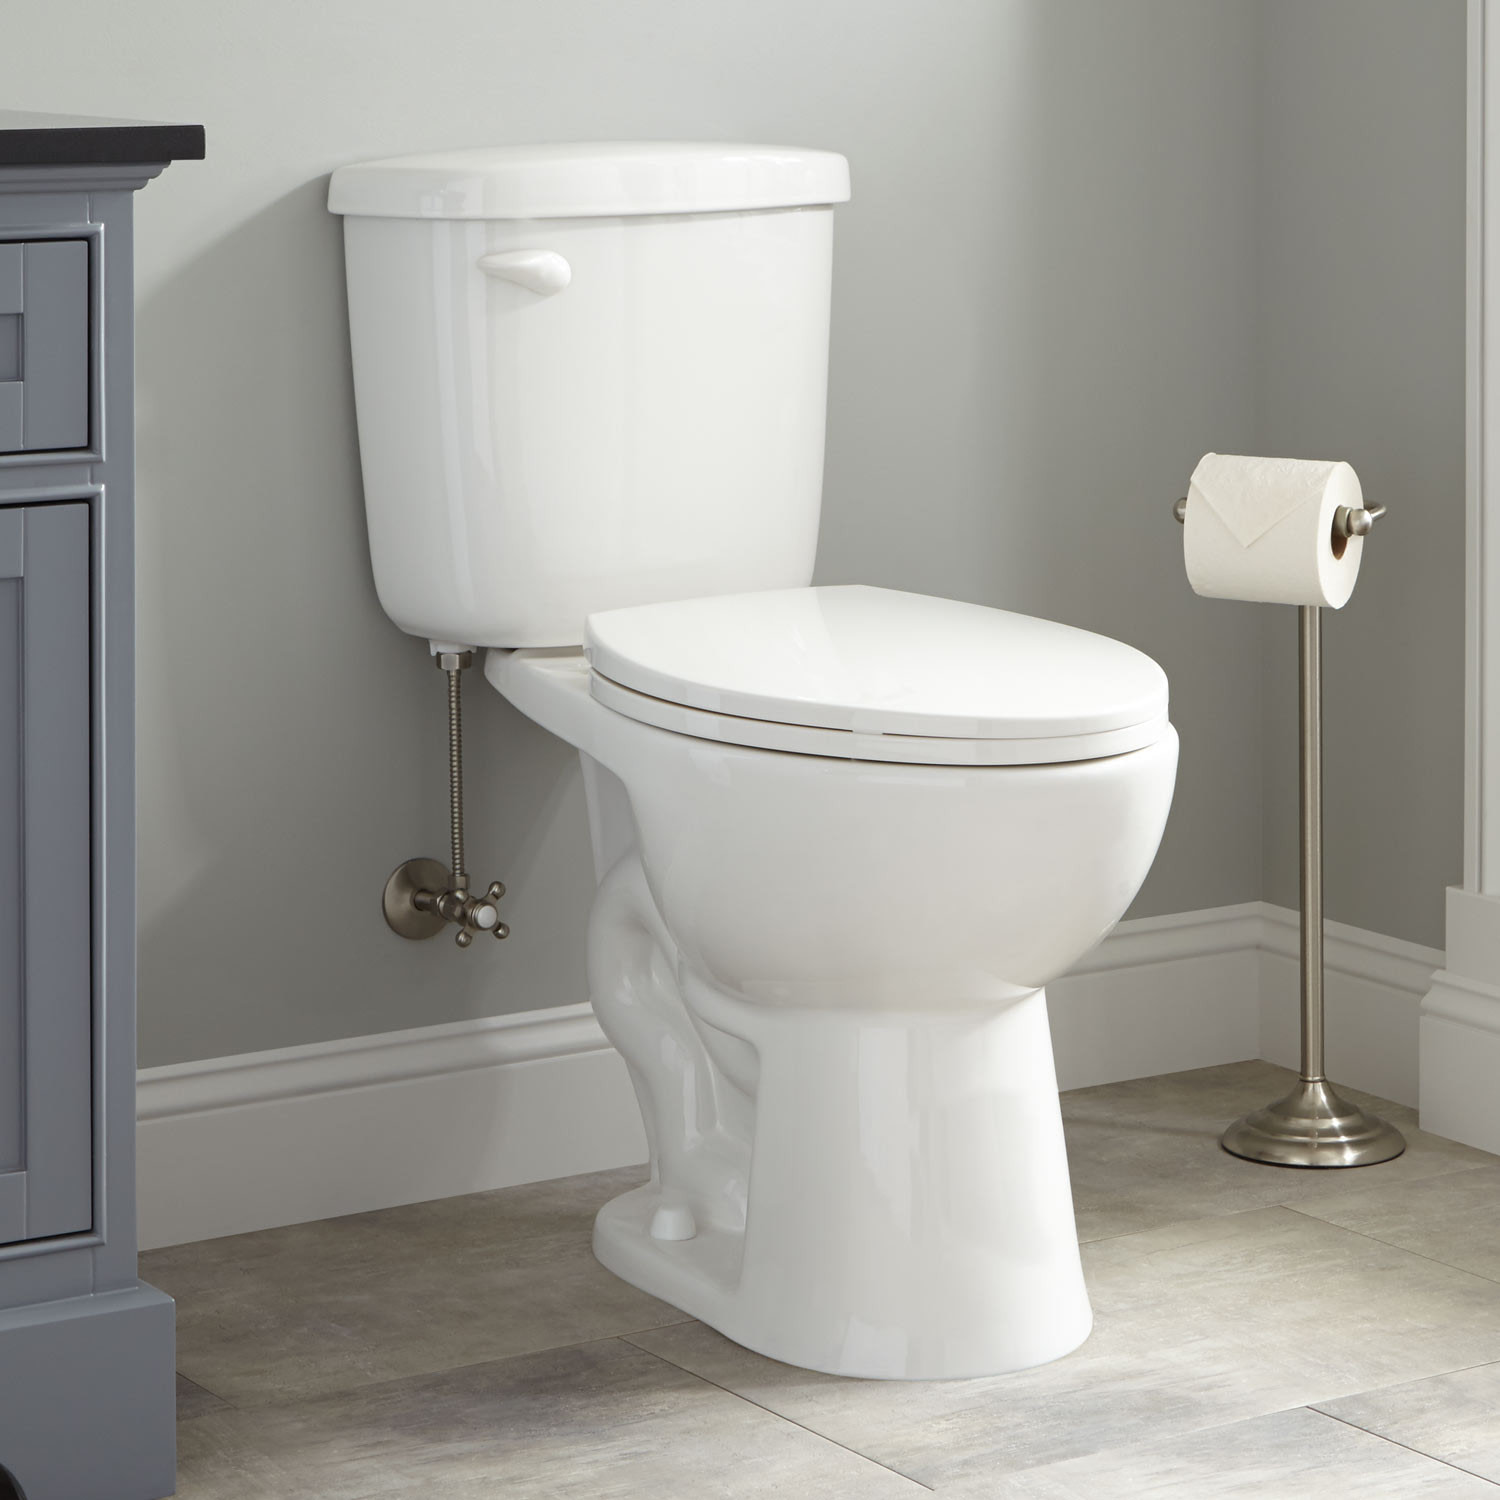 Toilet Repair and Replacement - Jersey Plumbing Service